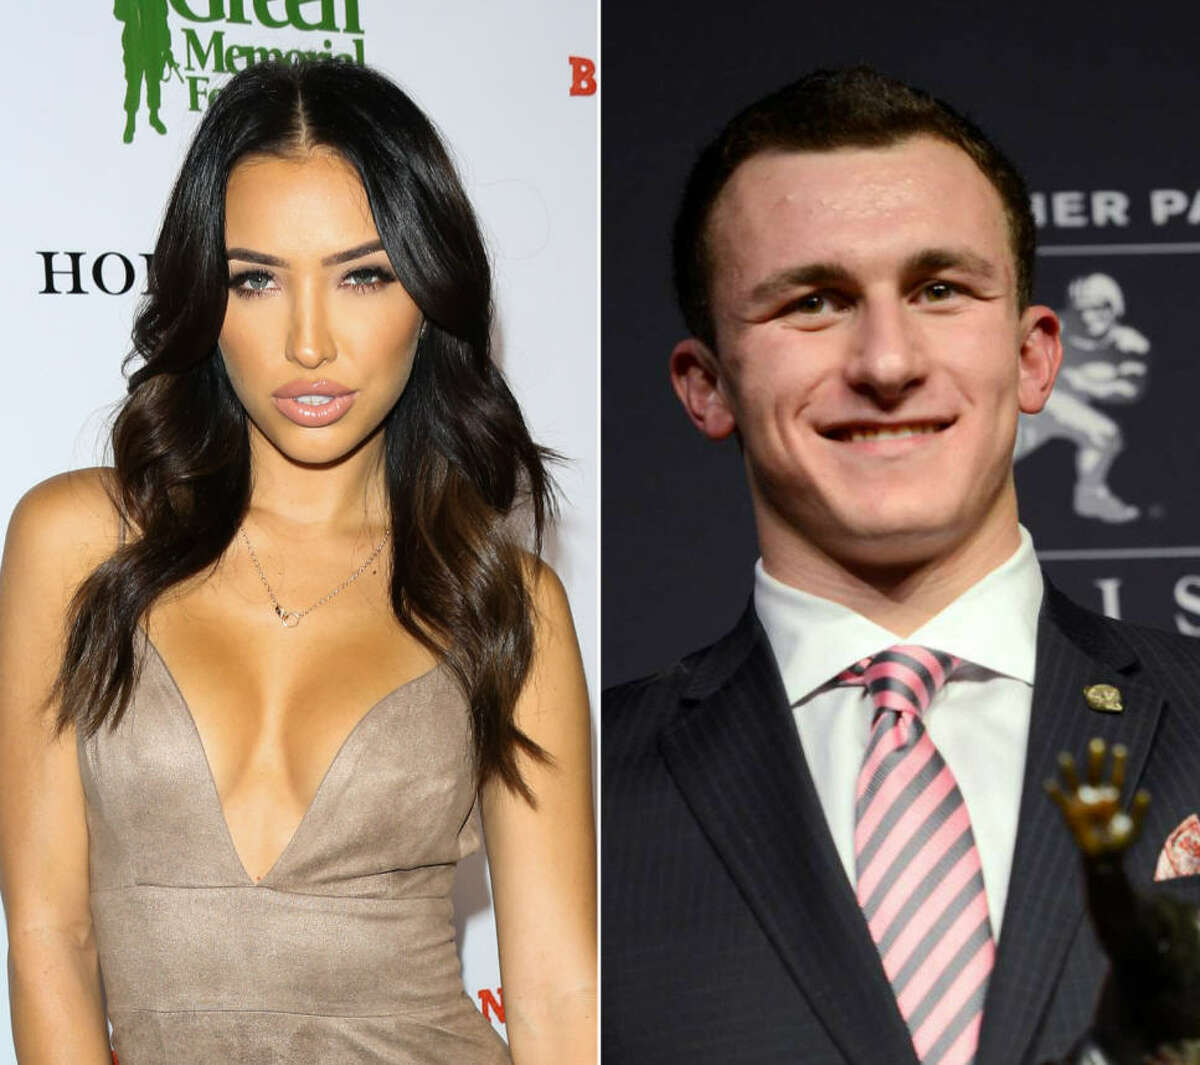 TMZ reports that Johnny Manziel is getting closer to Bre Tiesi, an Instagram model. Continue clicking to see the highs and lows of Manziel during his years in the spotlight.